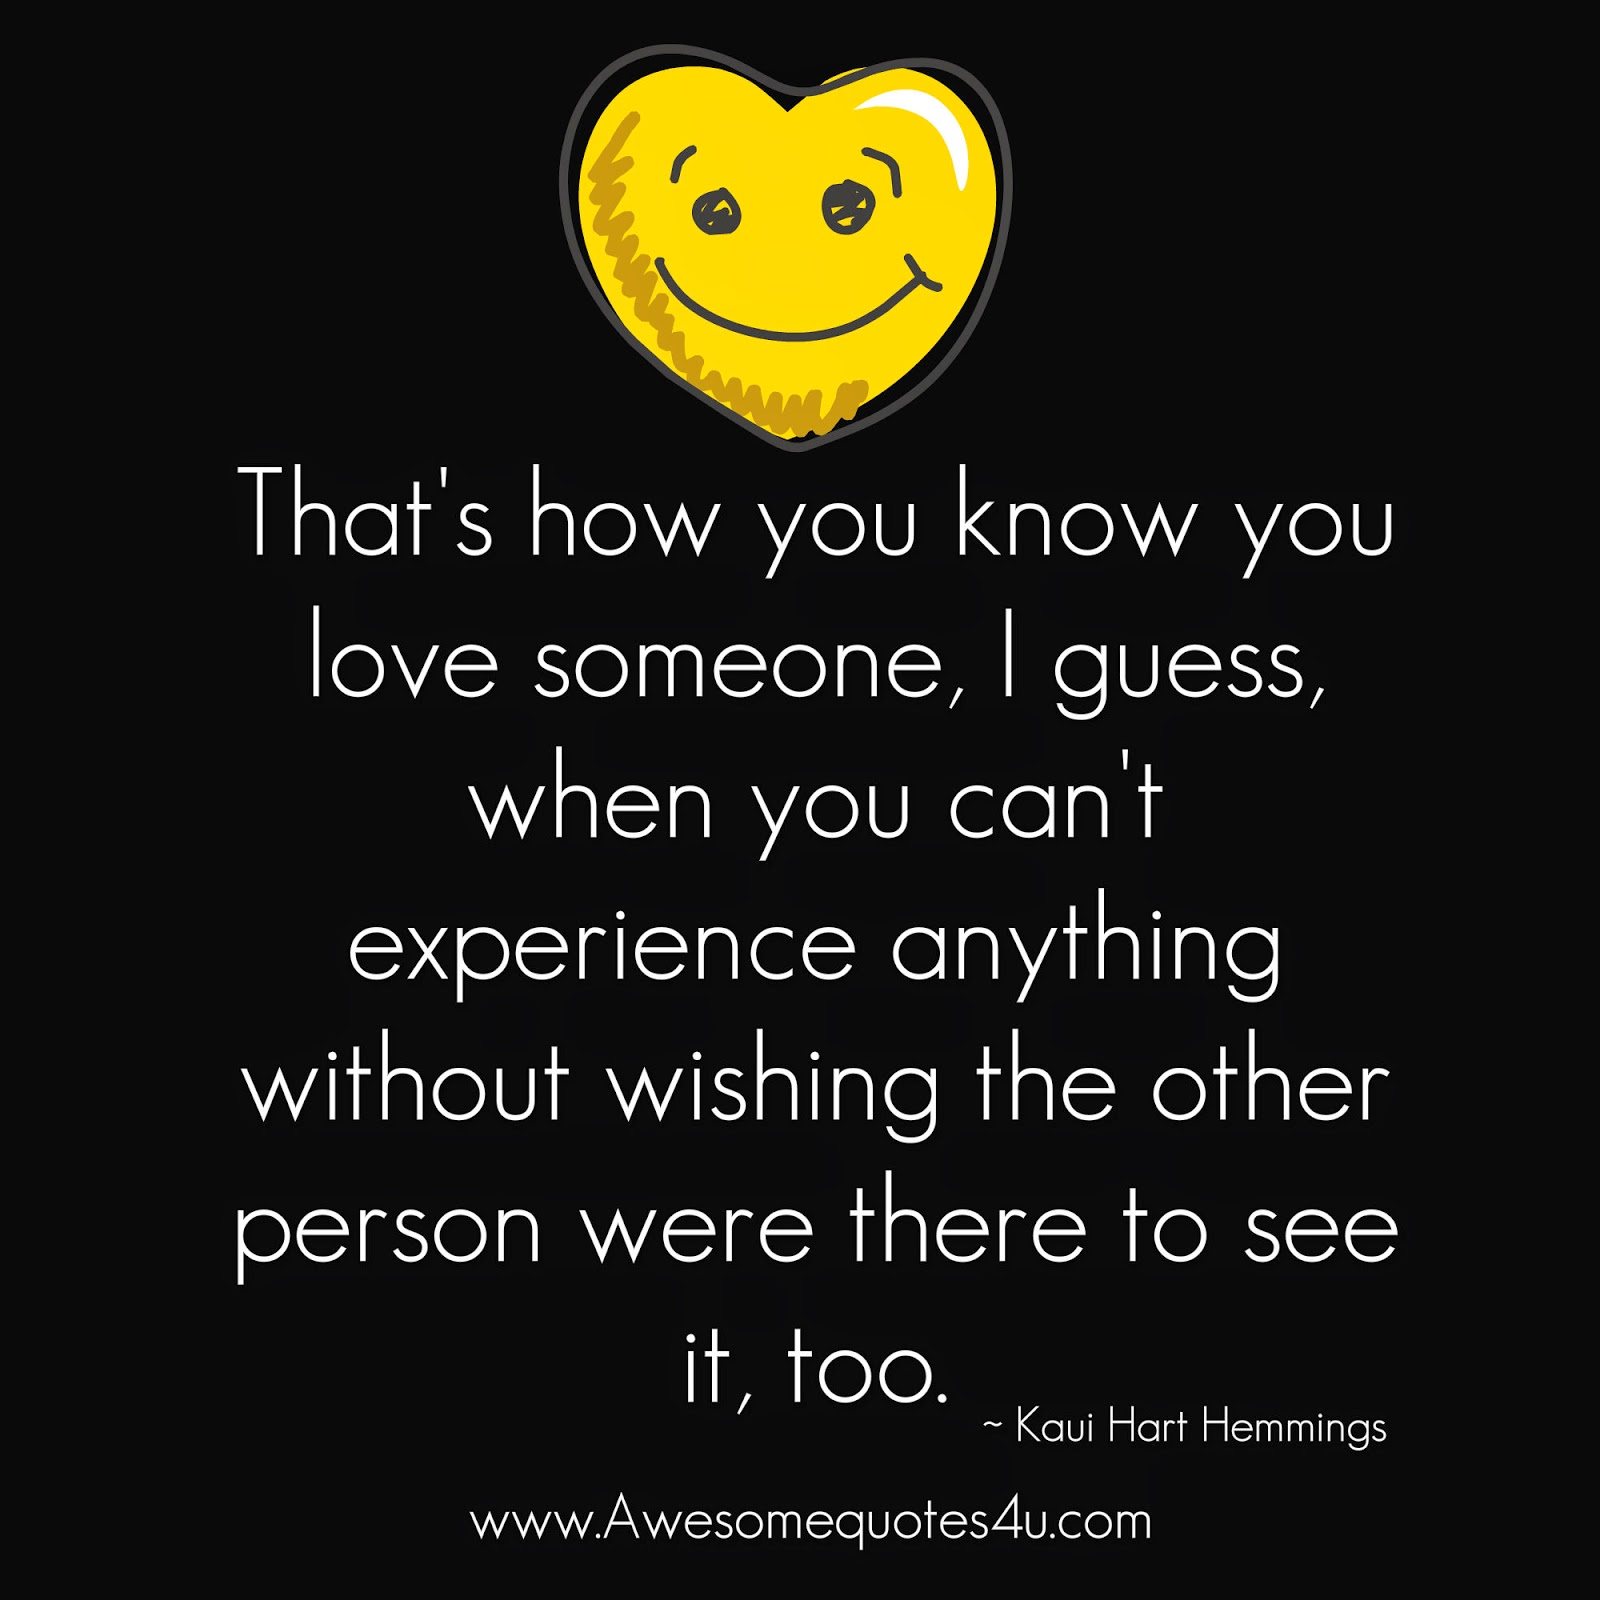 Awesome Quotes: How You Know You Love Someone?